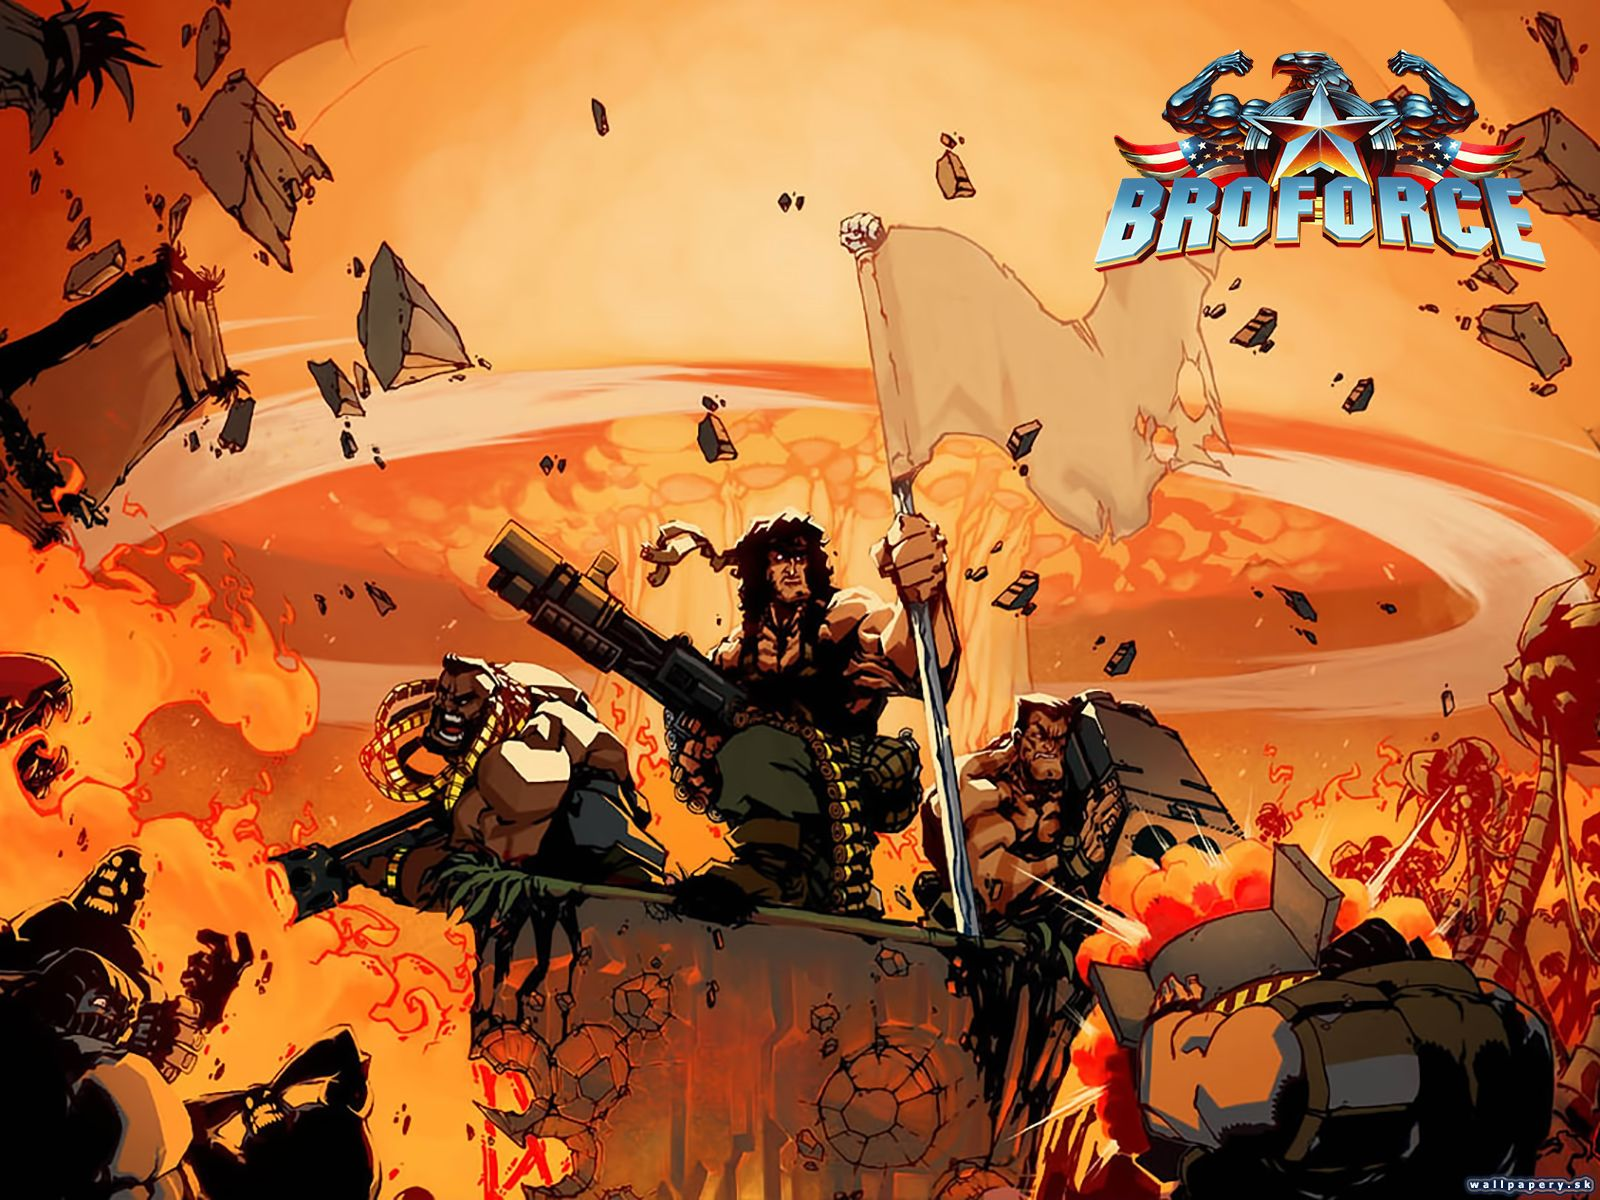 broforce wallpaper Google Search Game codes, Online